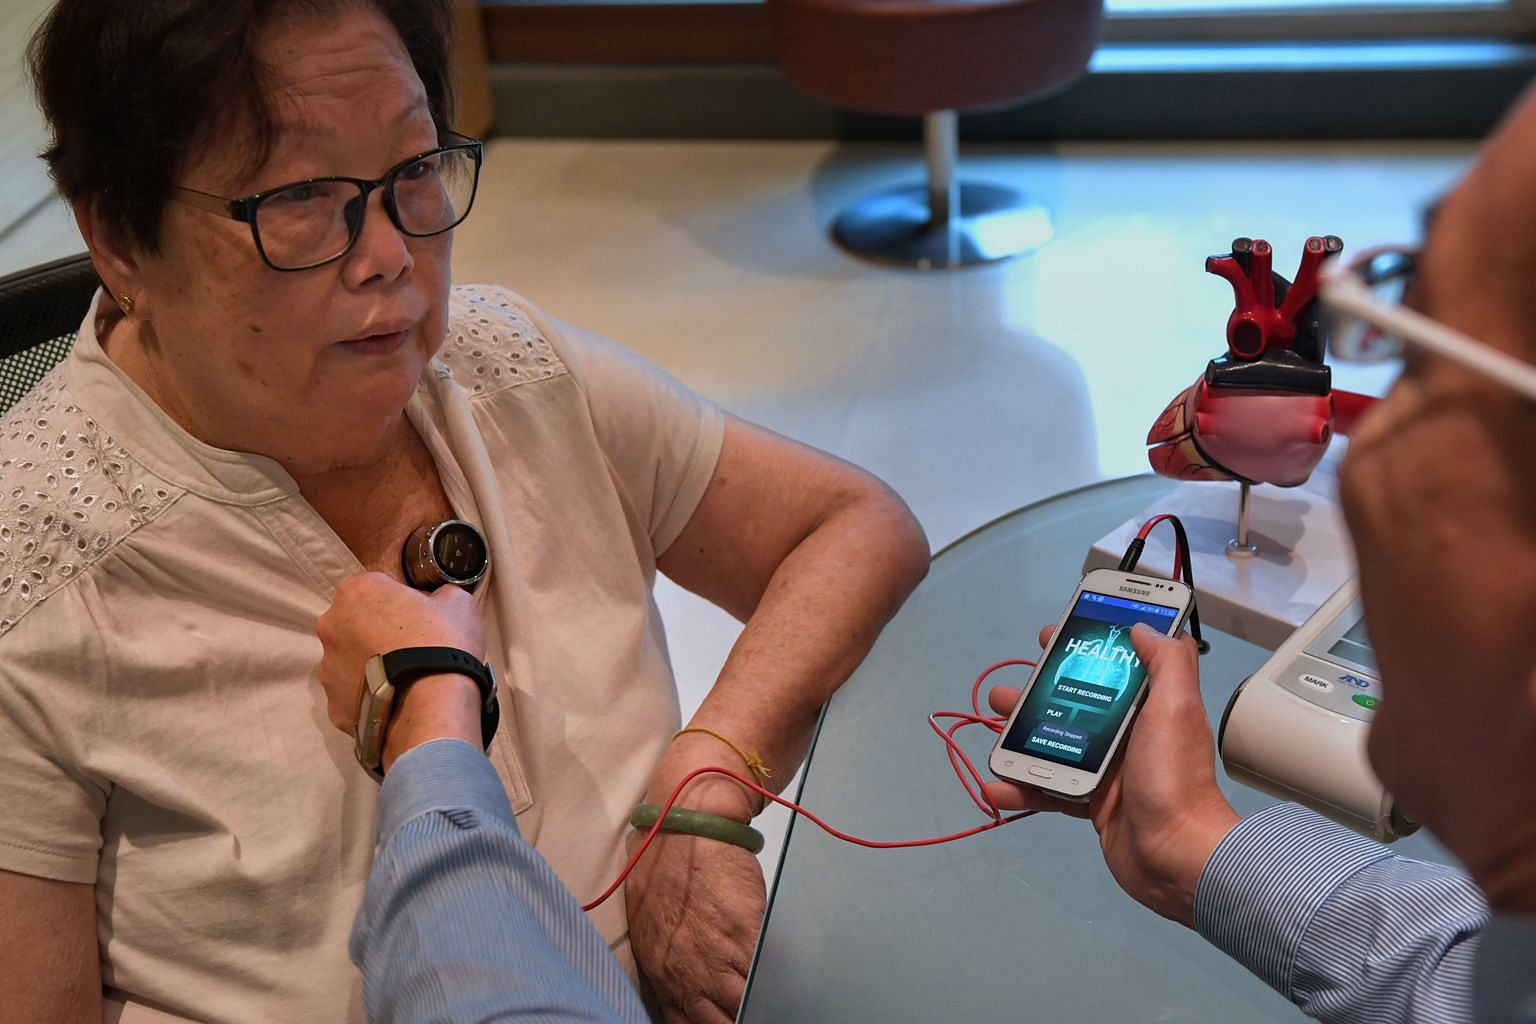 Tan Tock Seng Hospital's head of cardiology David Foo demonstrating the use of the device - which checks for fluid accumulation in the lungs, an early symptom of heart failure - to heart patient Tan Hui Keng at the hospital yesterday. The device was